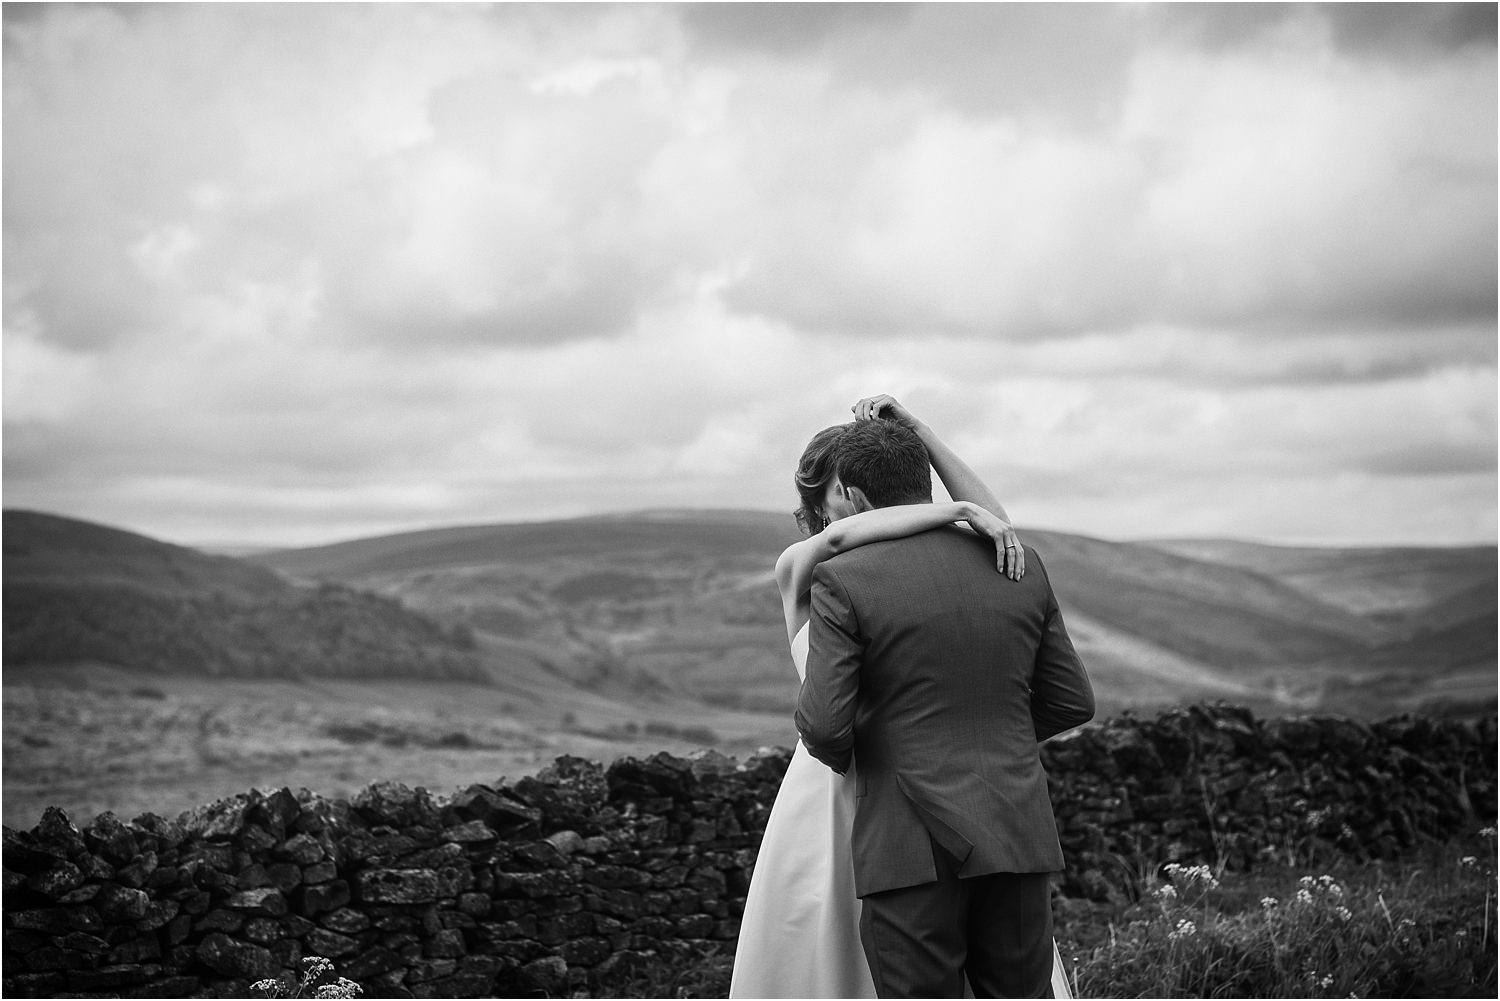 Brde and groom embrace after their wedding ceremony, with Lancashire fells in the bcakground